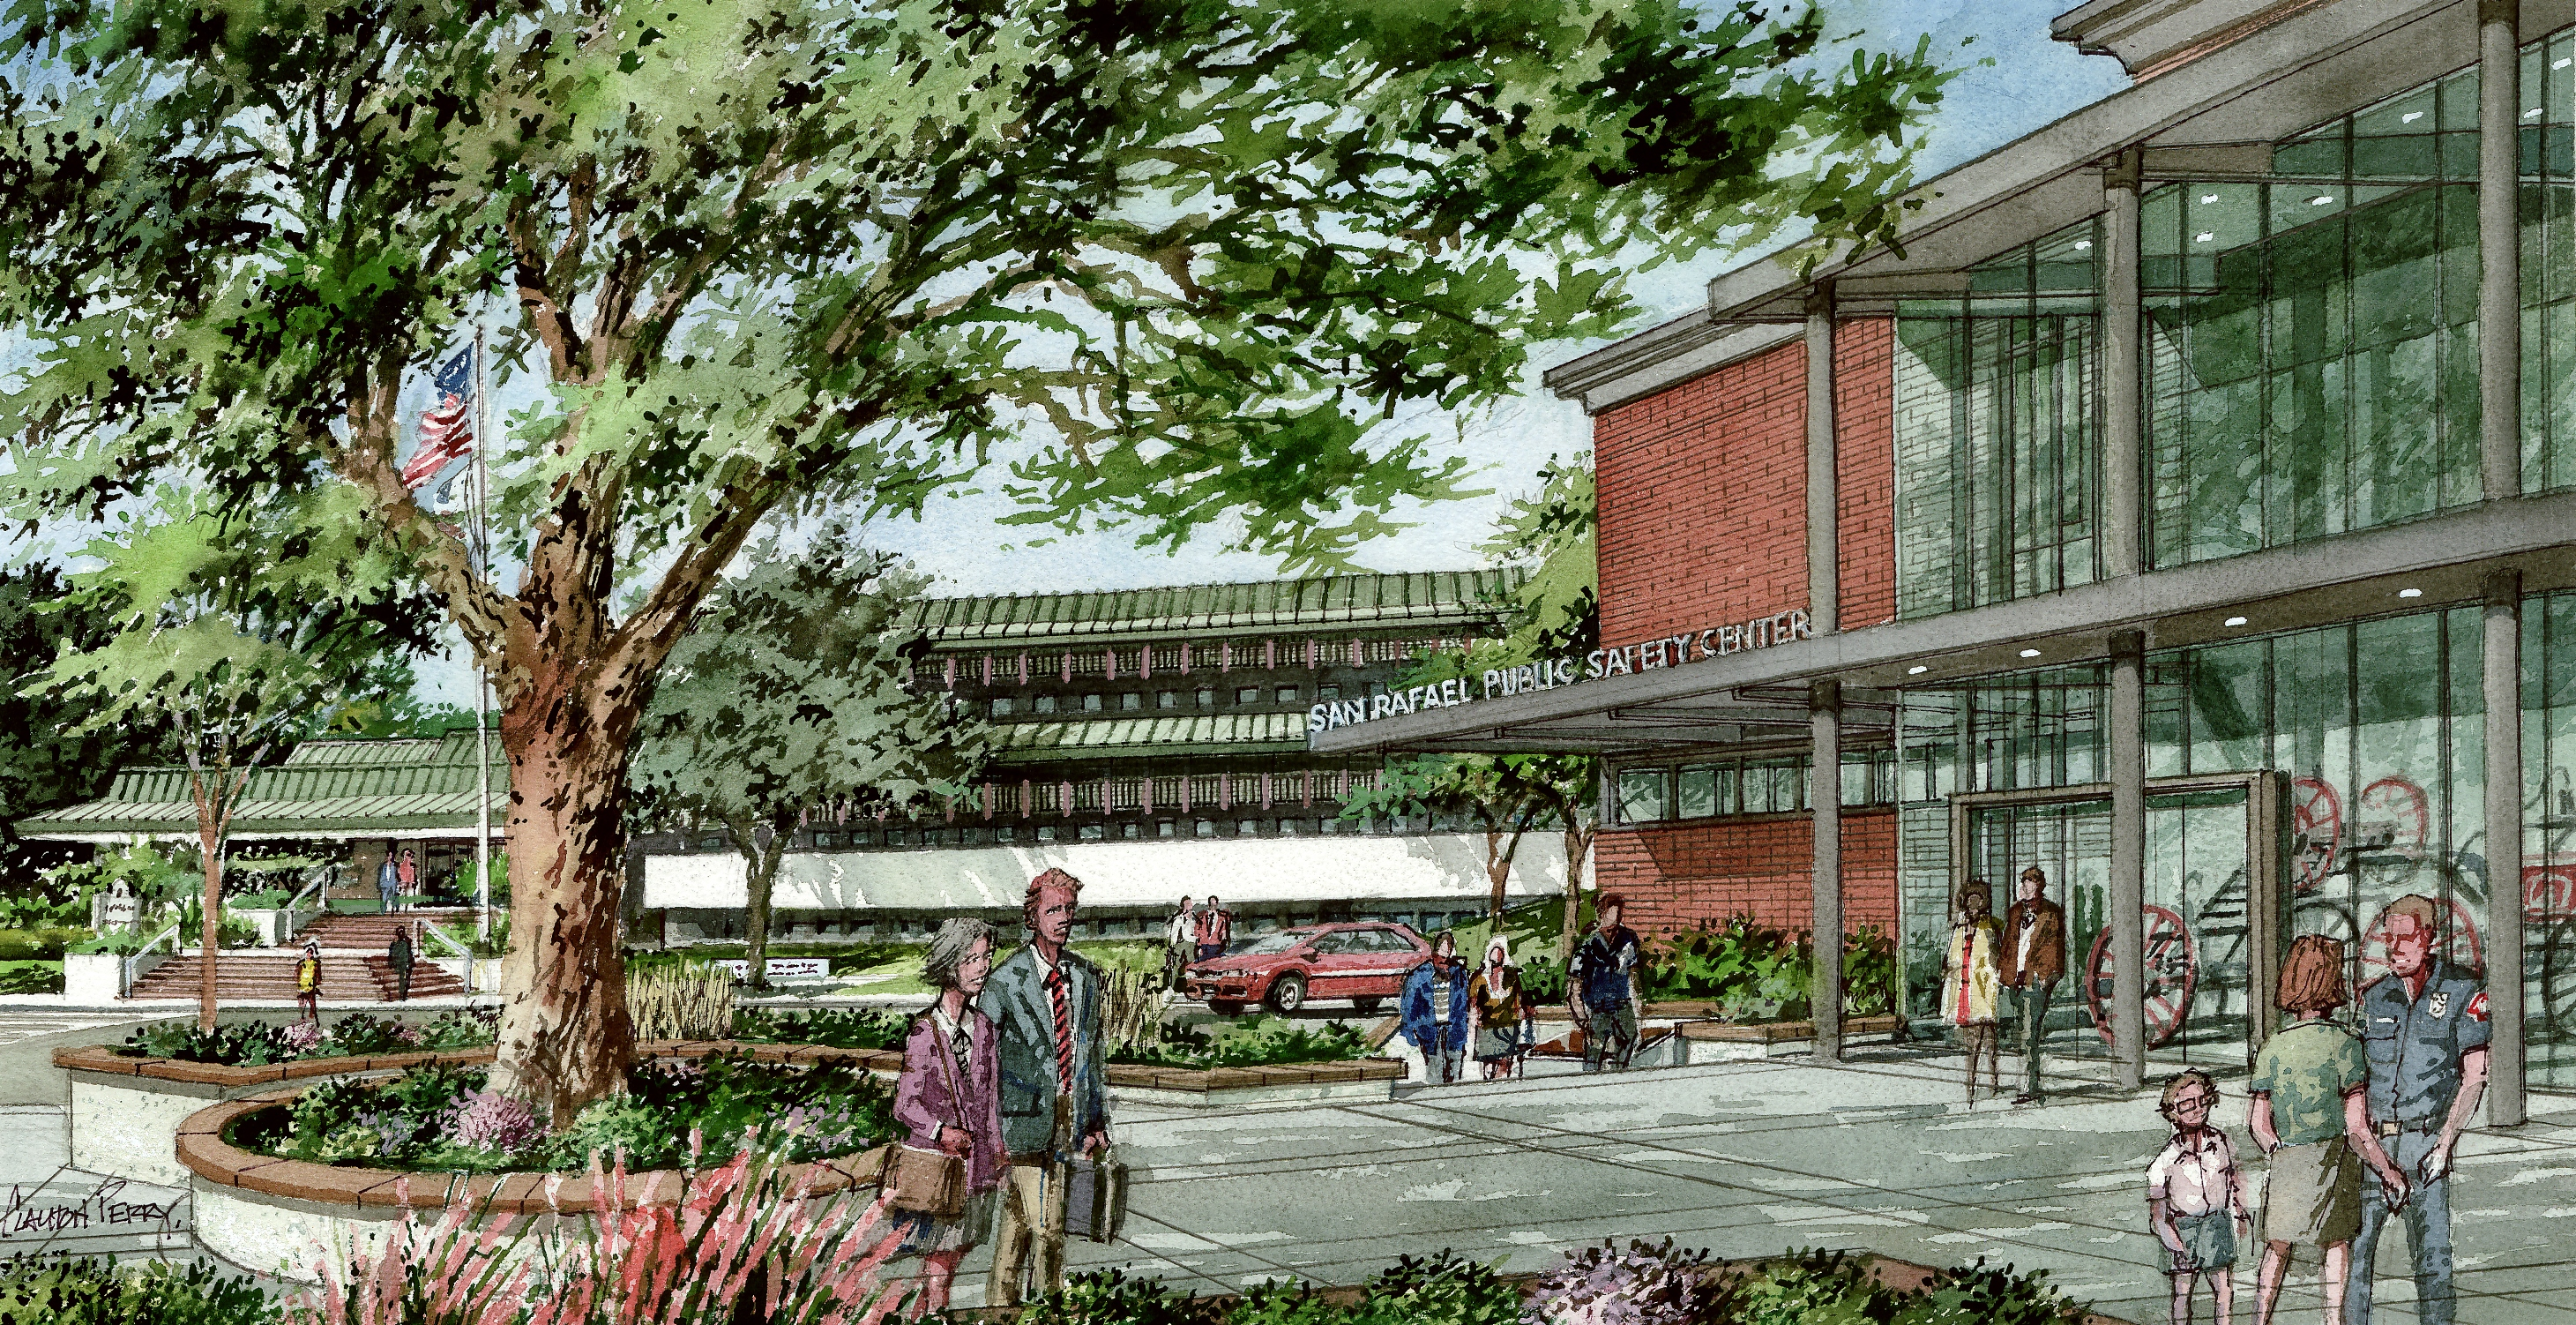 Watercoloring rendering of the new Public Safety Center